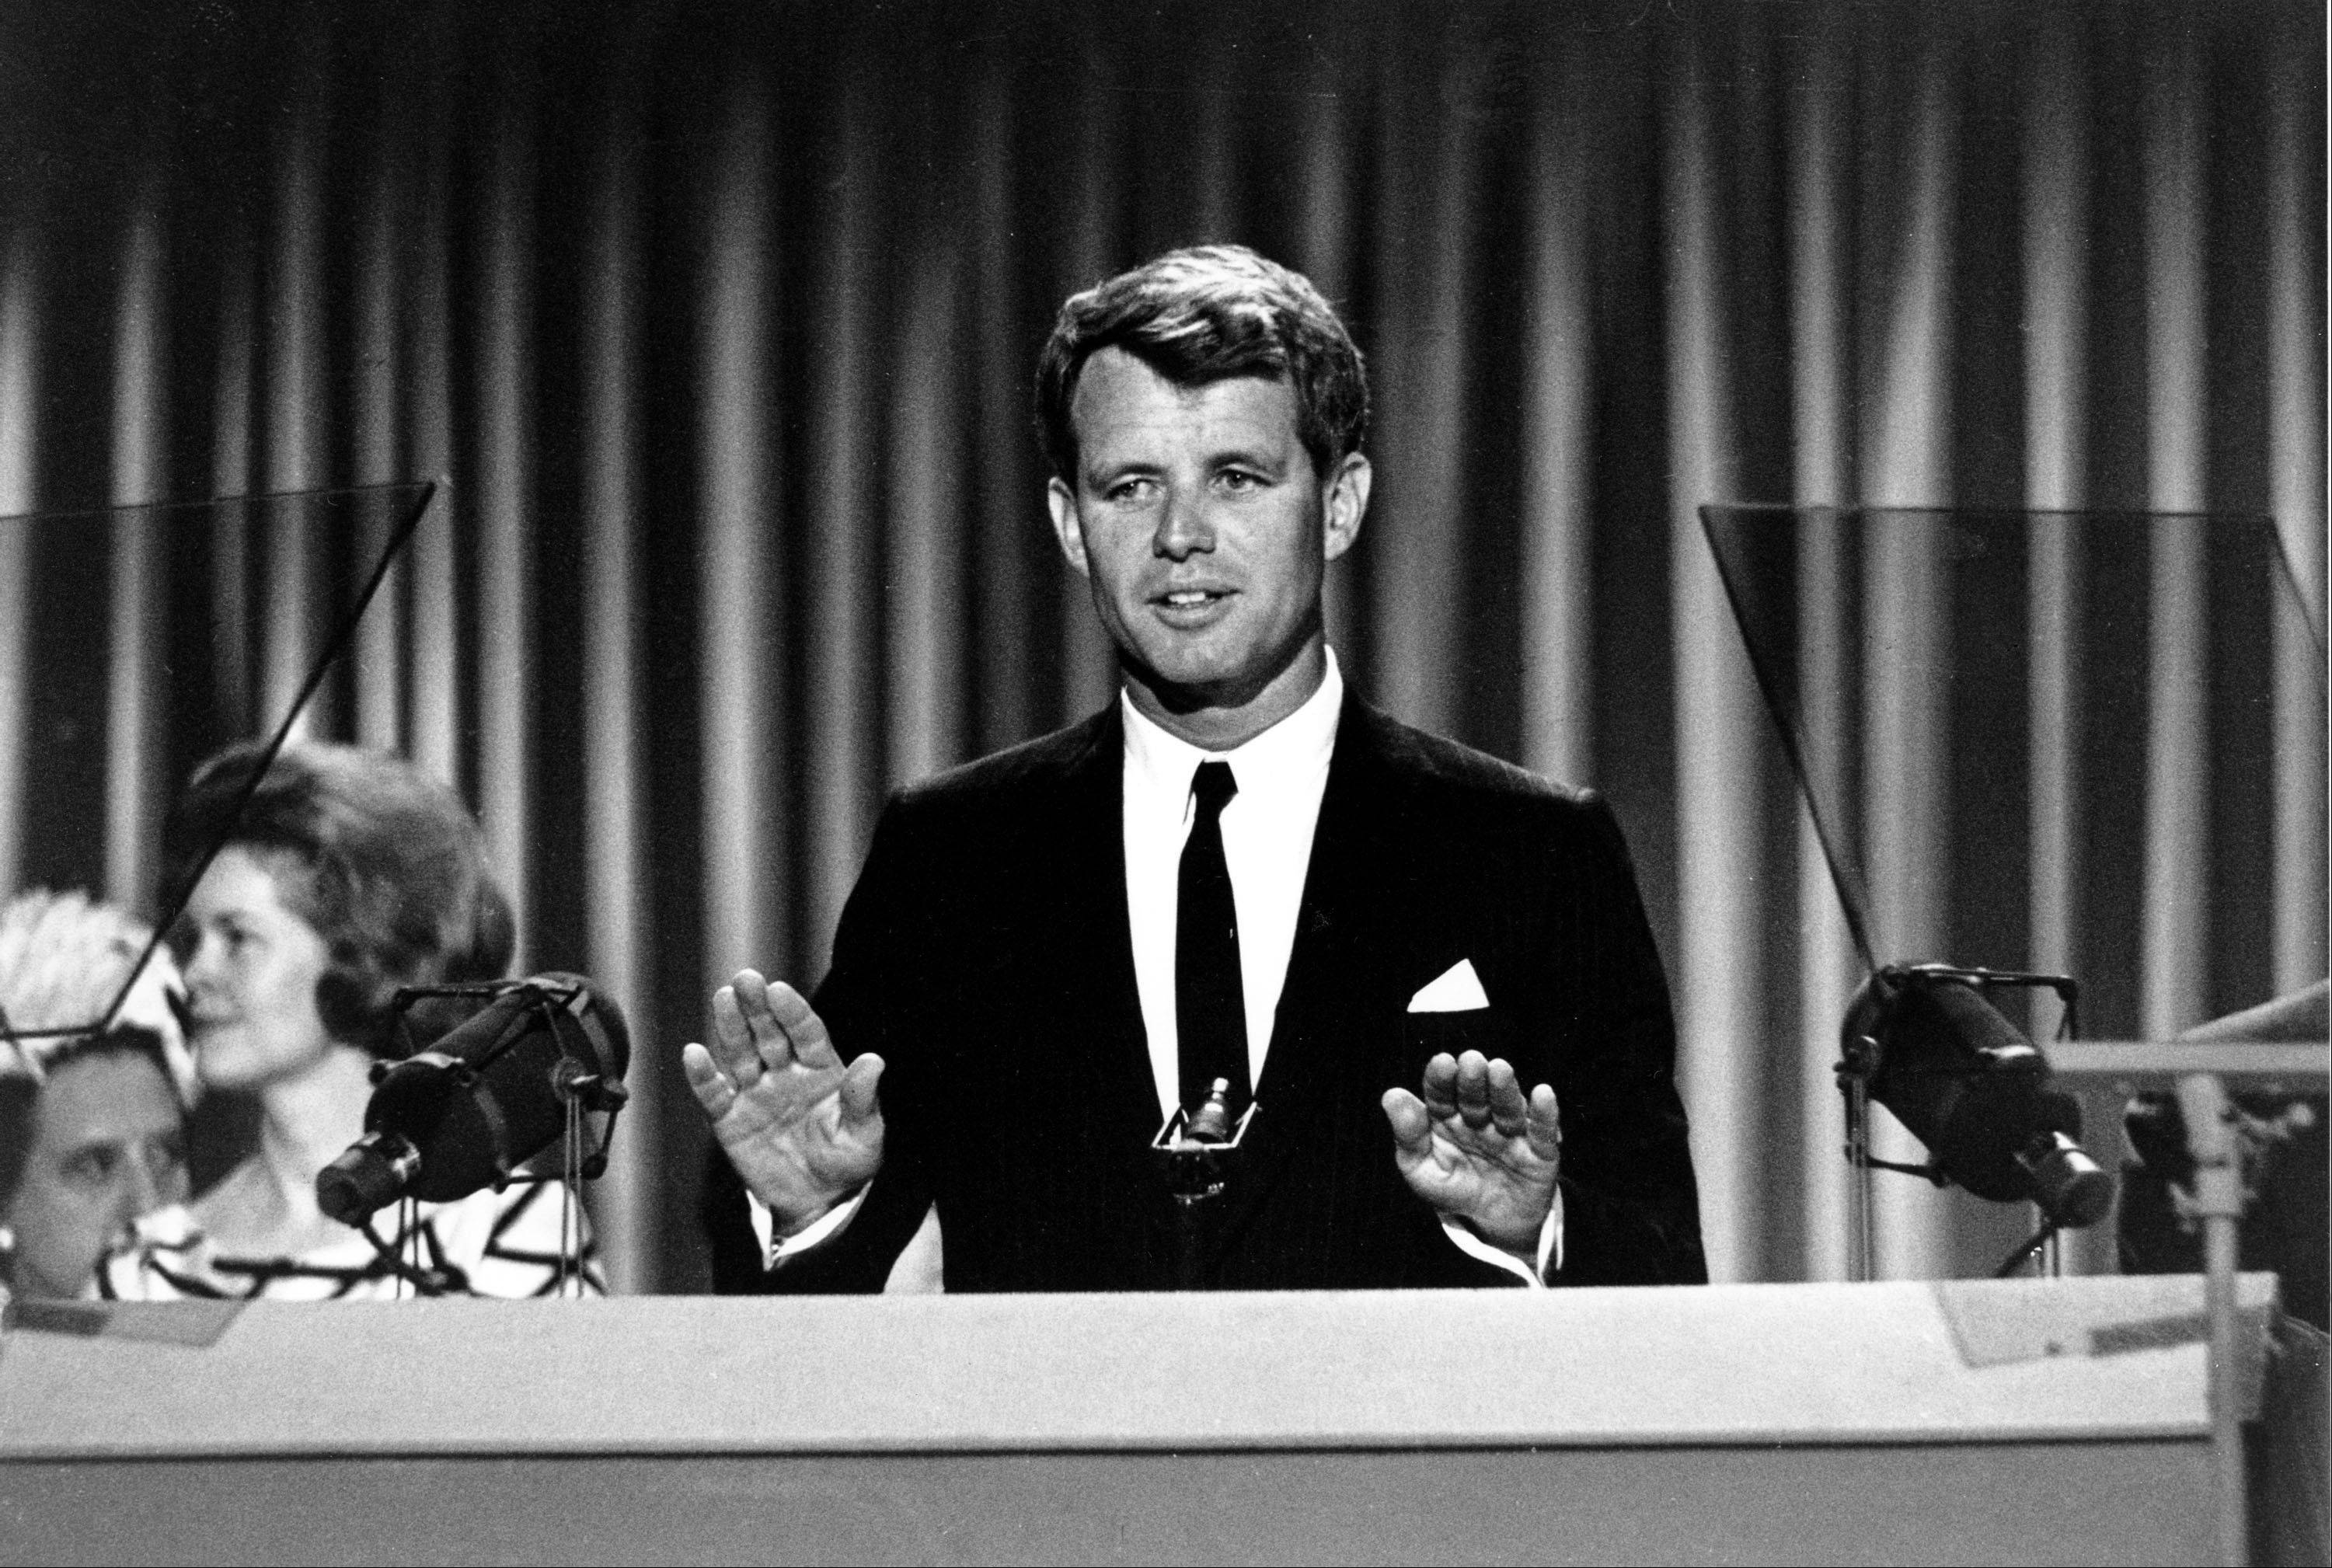 "In this Aug. 28, 1964, file photo, Sen. Robert Kennedy stands before the delegates at the Democratic National Convention in Atlantic City, N.J. One of the memorable moments from past conventions was delegates standing in tearful silence as Robert Kennedy quotes Shakespeare in tribute to his slain brother, President John F. Kennedy: ""When he shall die, take him and cut him out into stars, and he shall make the face of heaven so fine that all the world will be in love with night and pay no worship to the garish sun."""